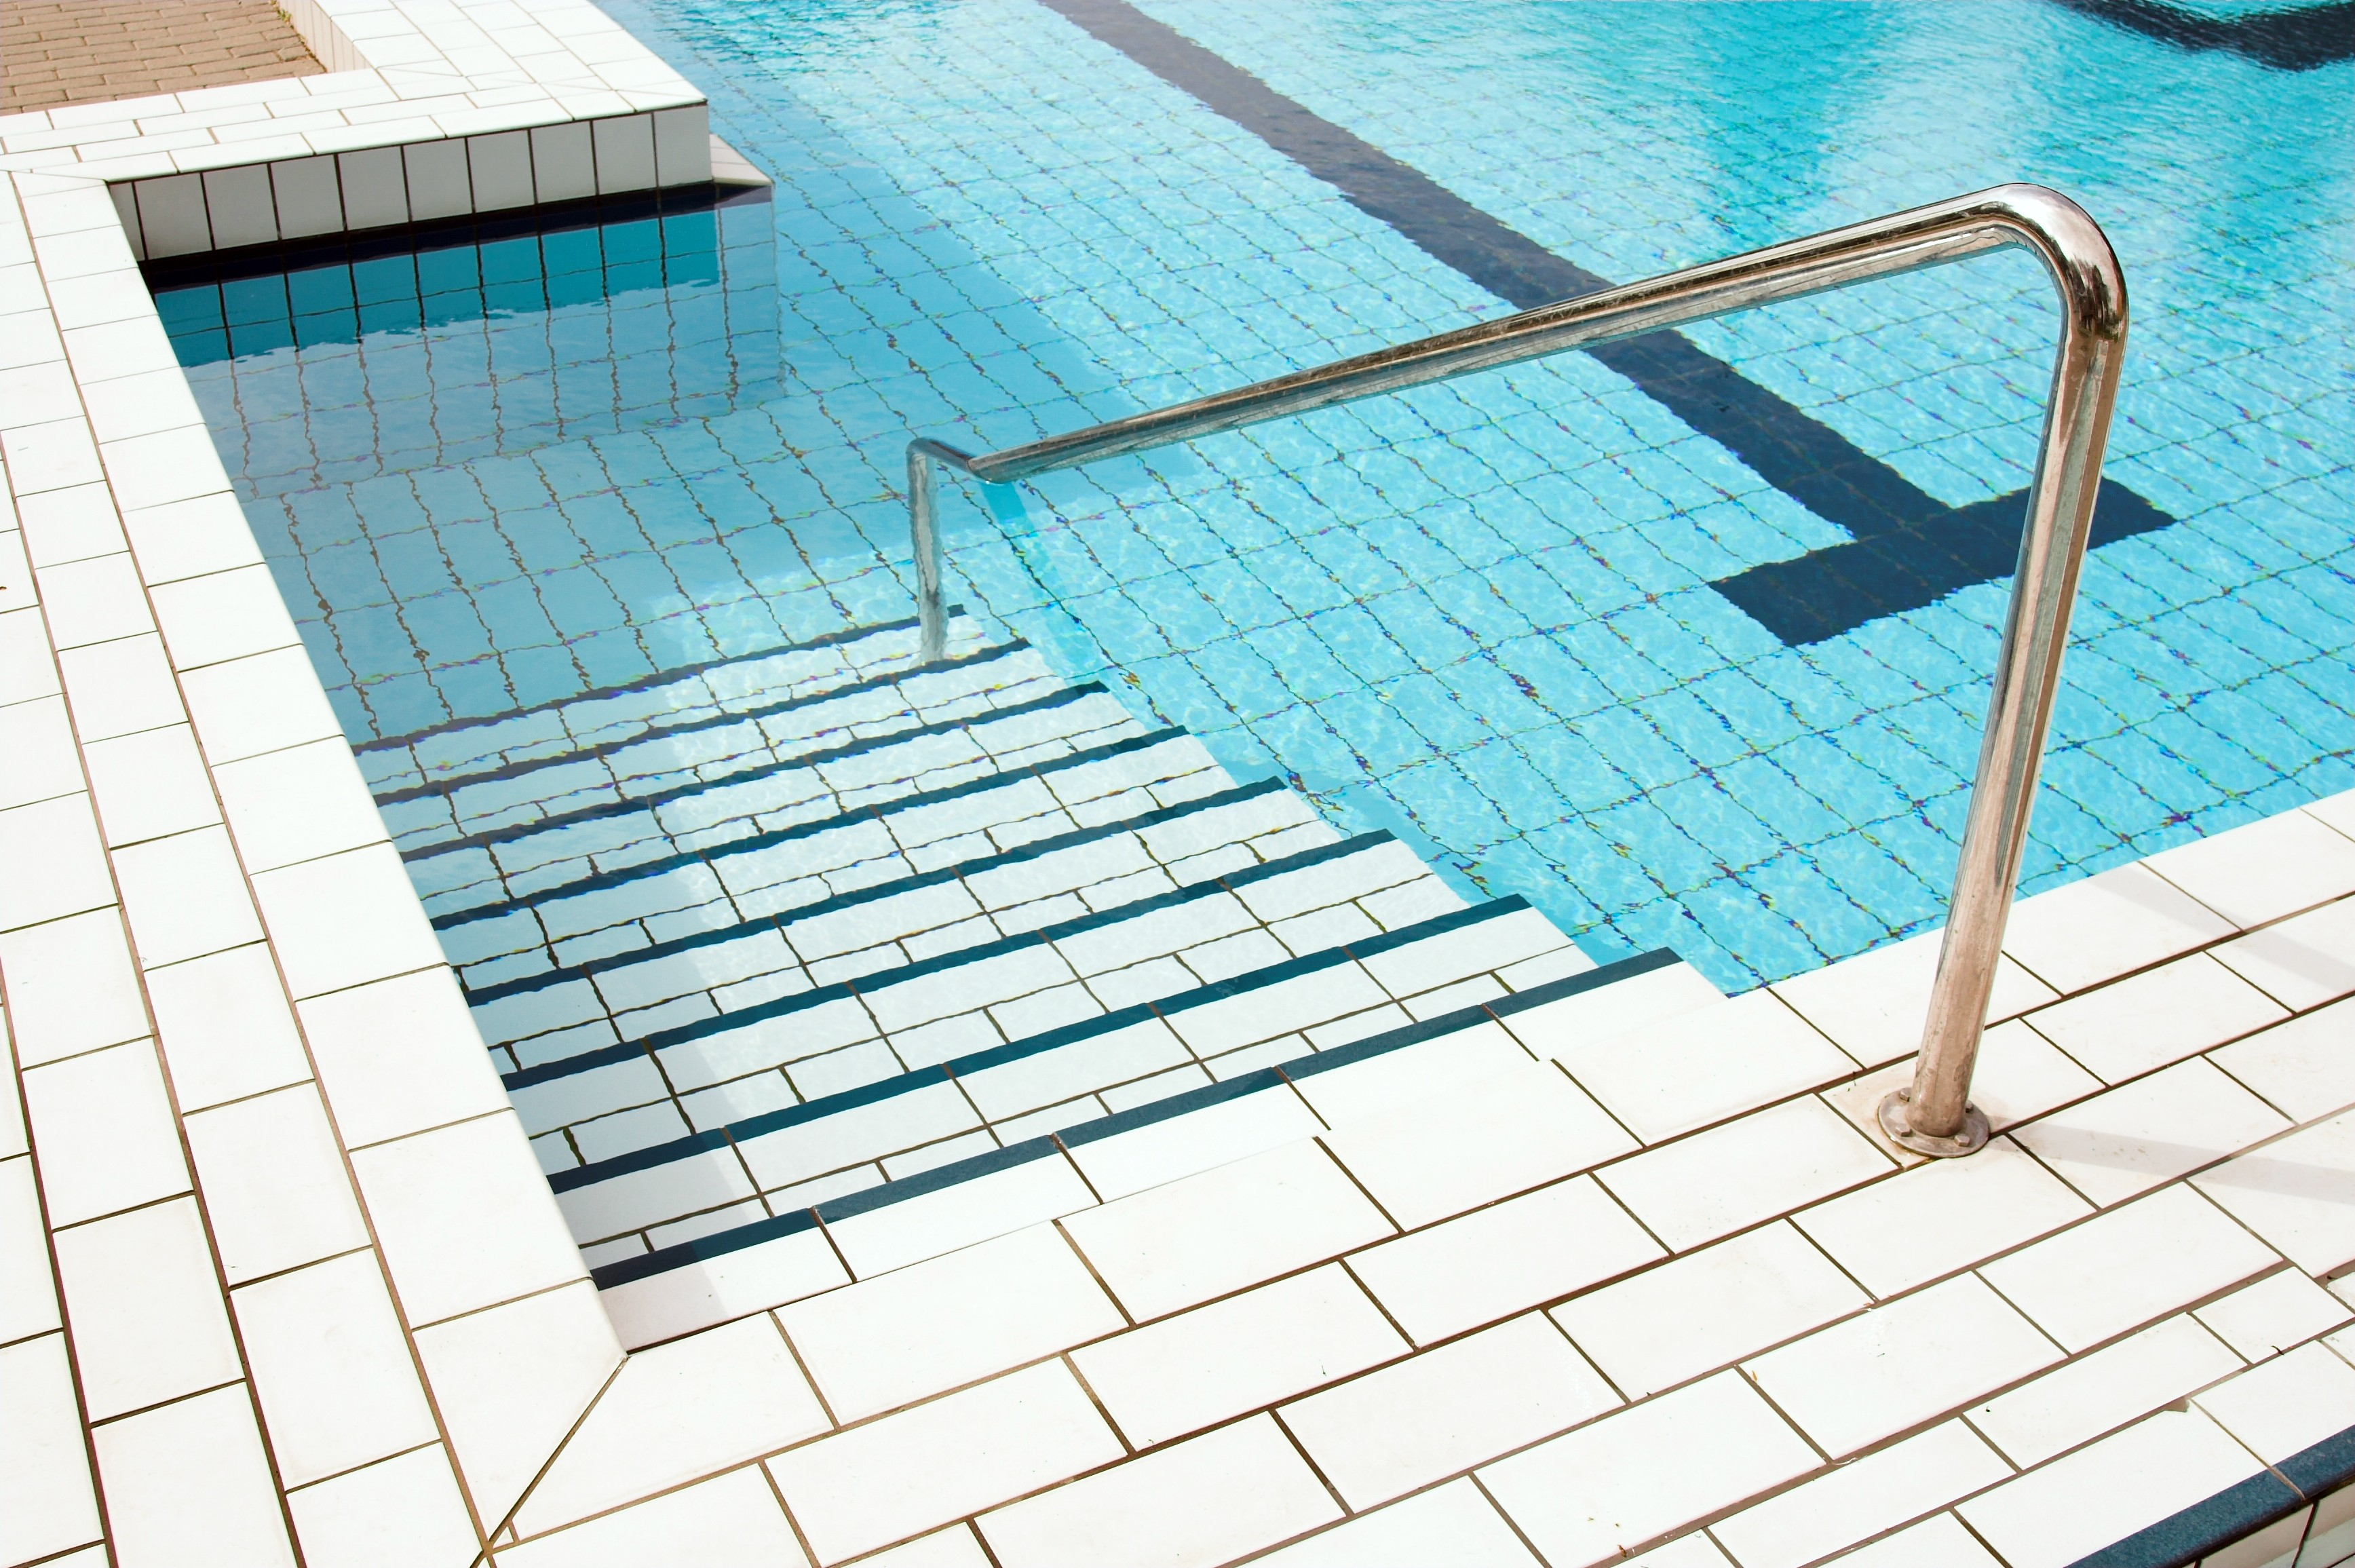 Swimming pools wallpaper 3471x2311 63213 wallpaperup for Swimming pool purchase